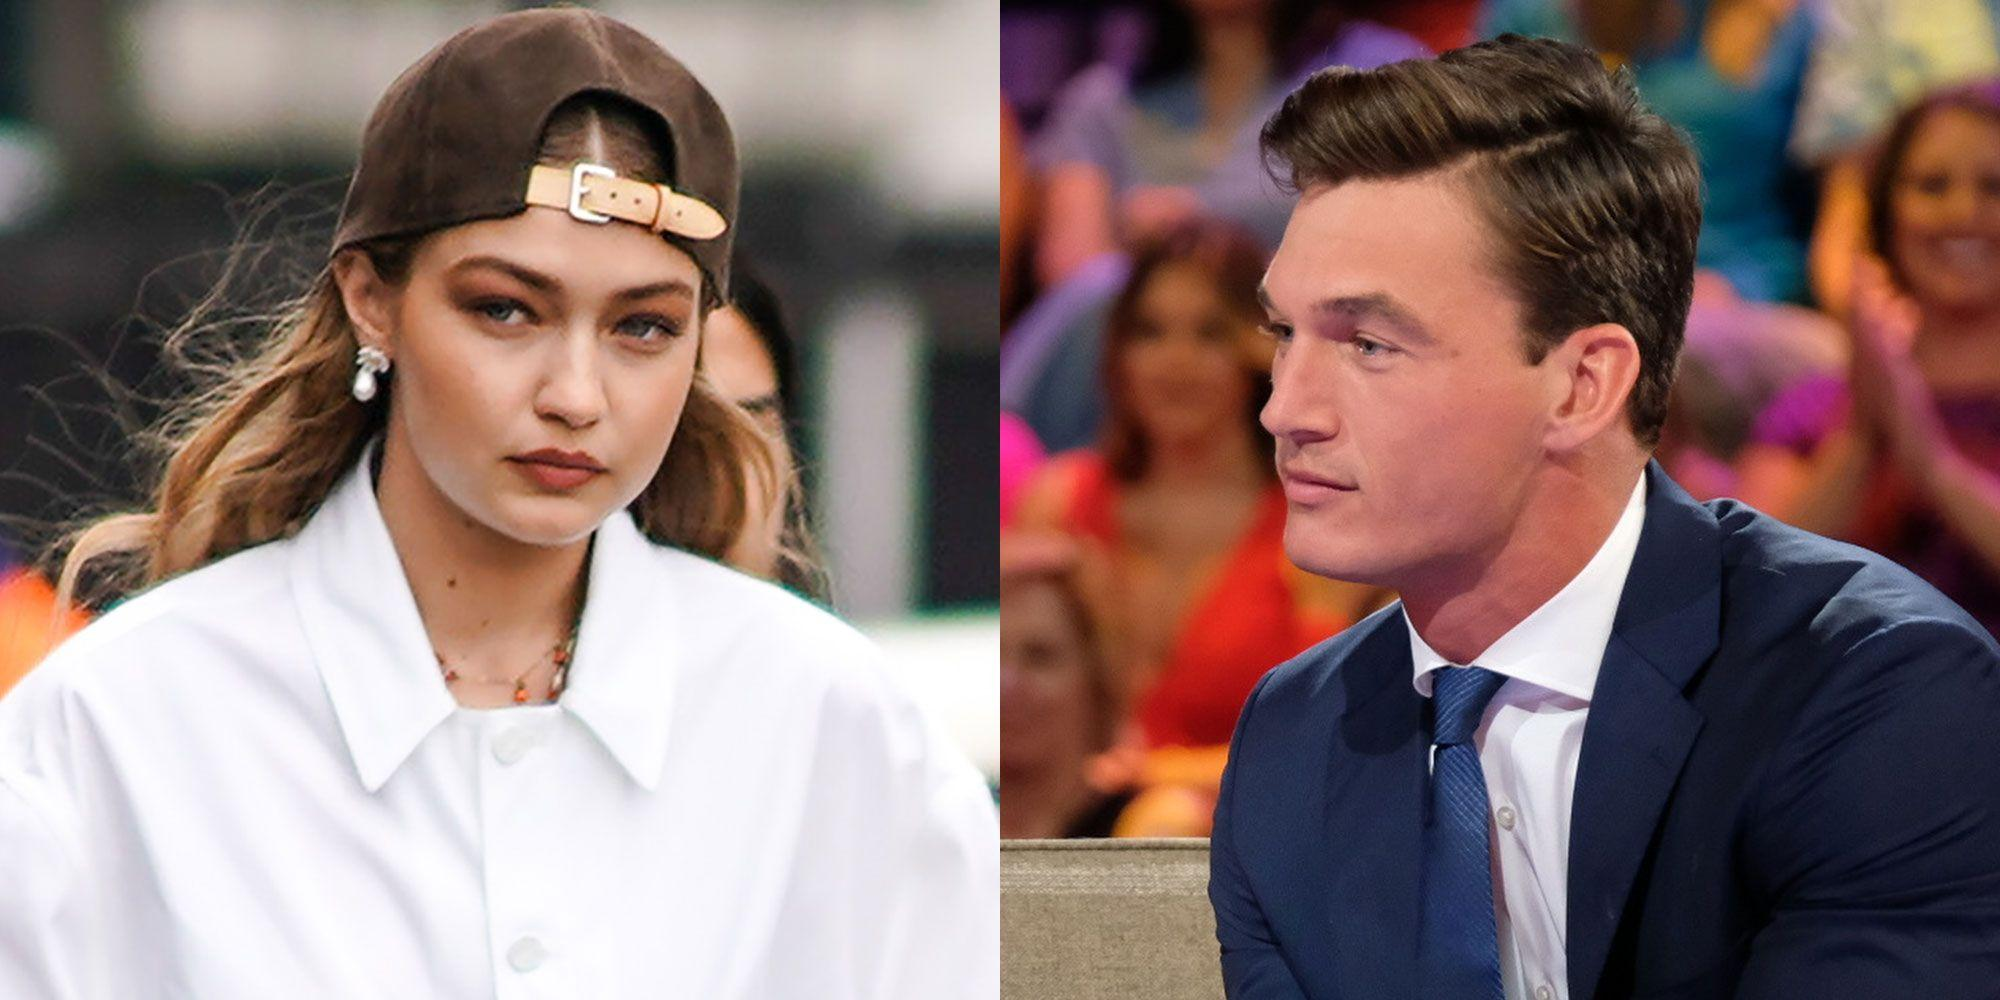 Tyler Cameron Has Been A Huge Support To Girlfriend Gigi Hadid After Her Grandmother's Passing, Source Says